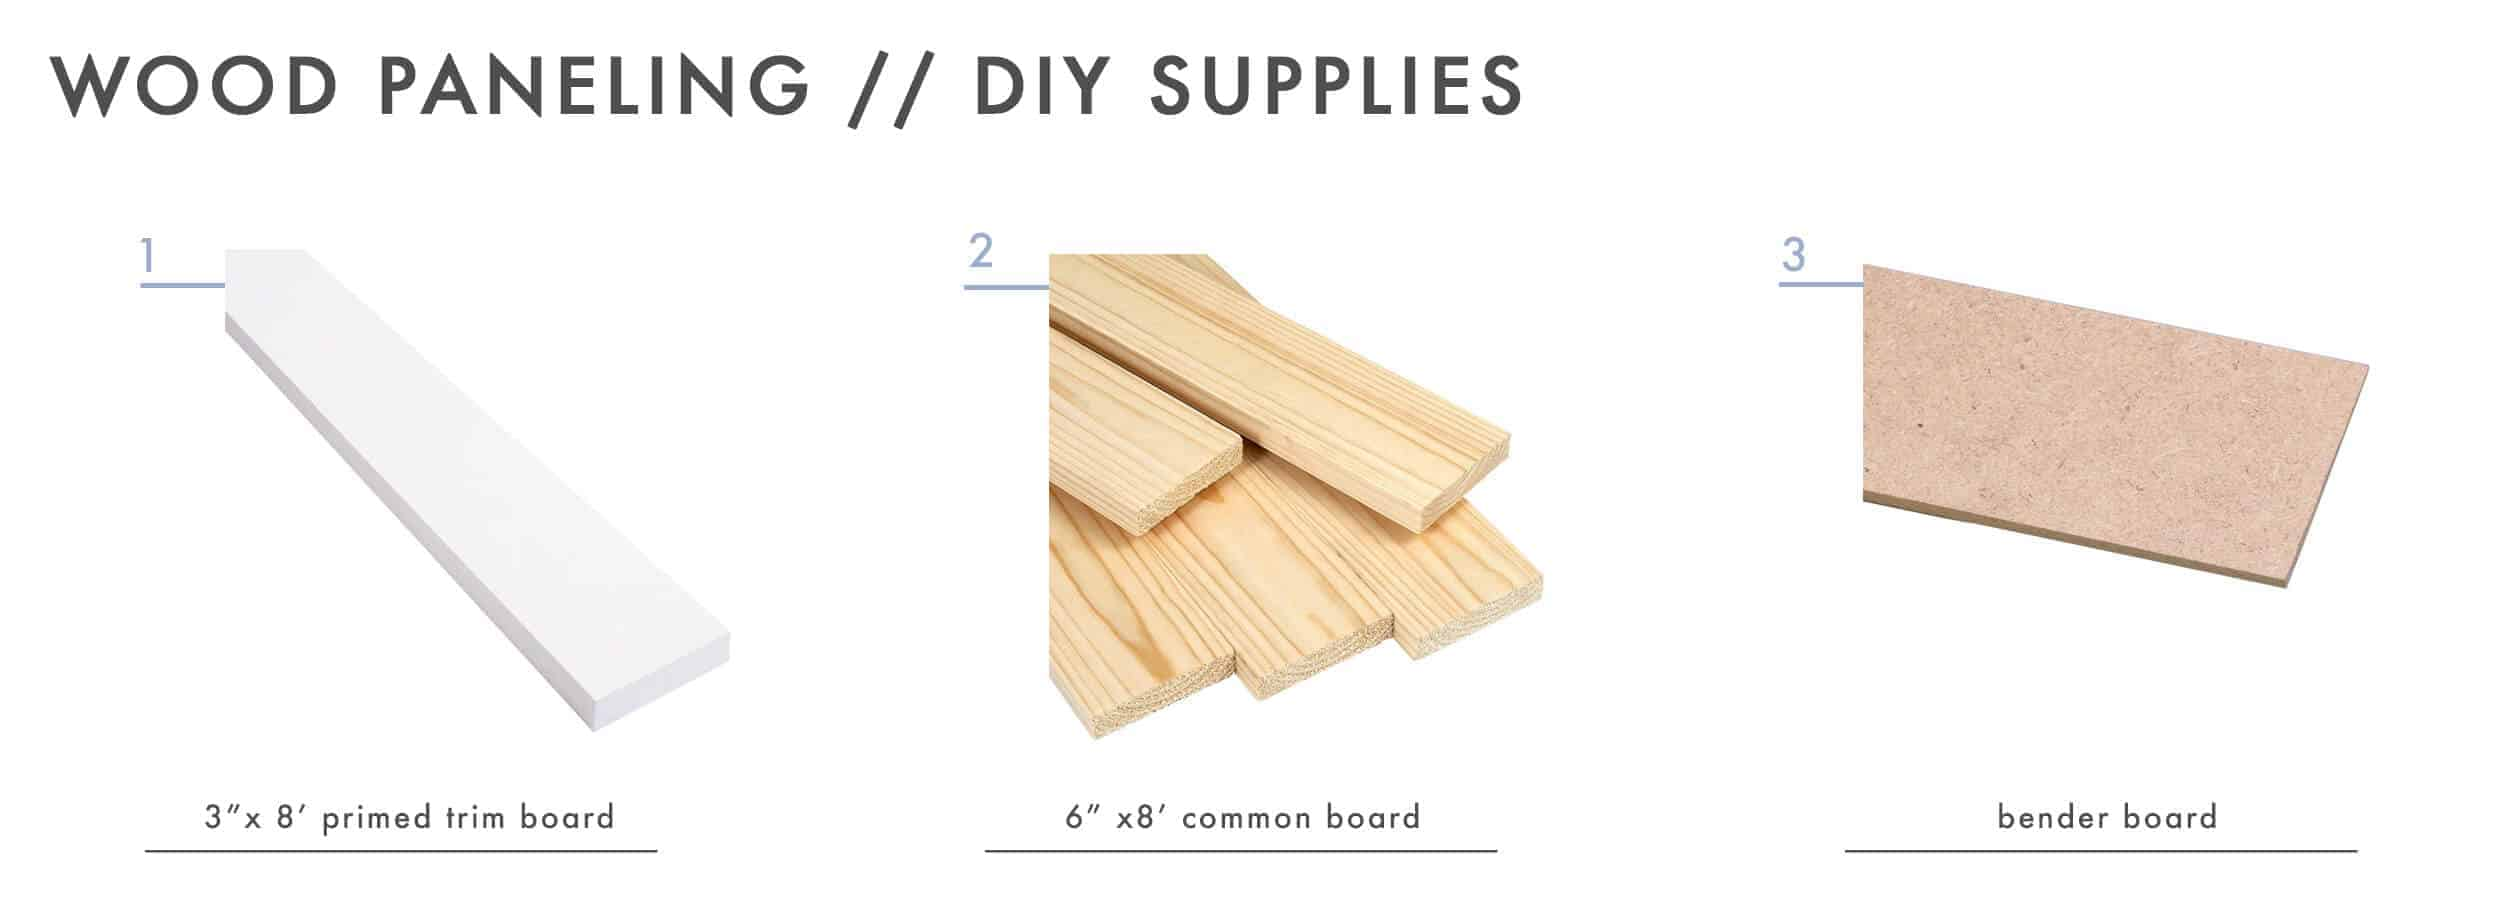 How To Add Character And Charm To Boring Architecture And Houses Ceiling Wood Paneling Diy Supplies